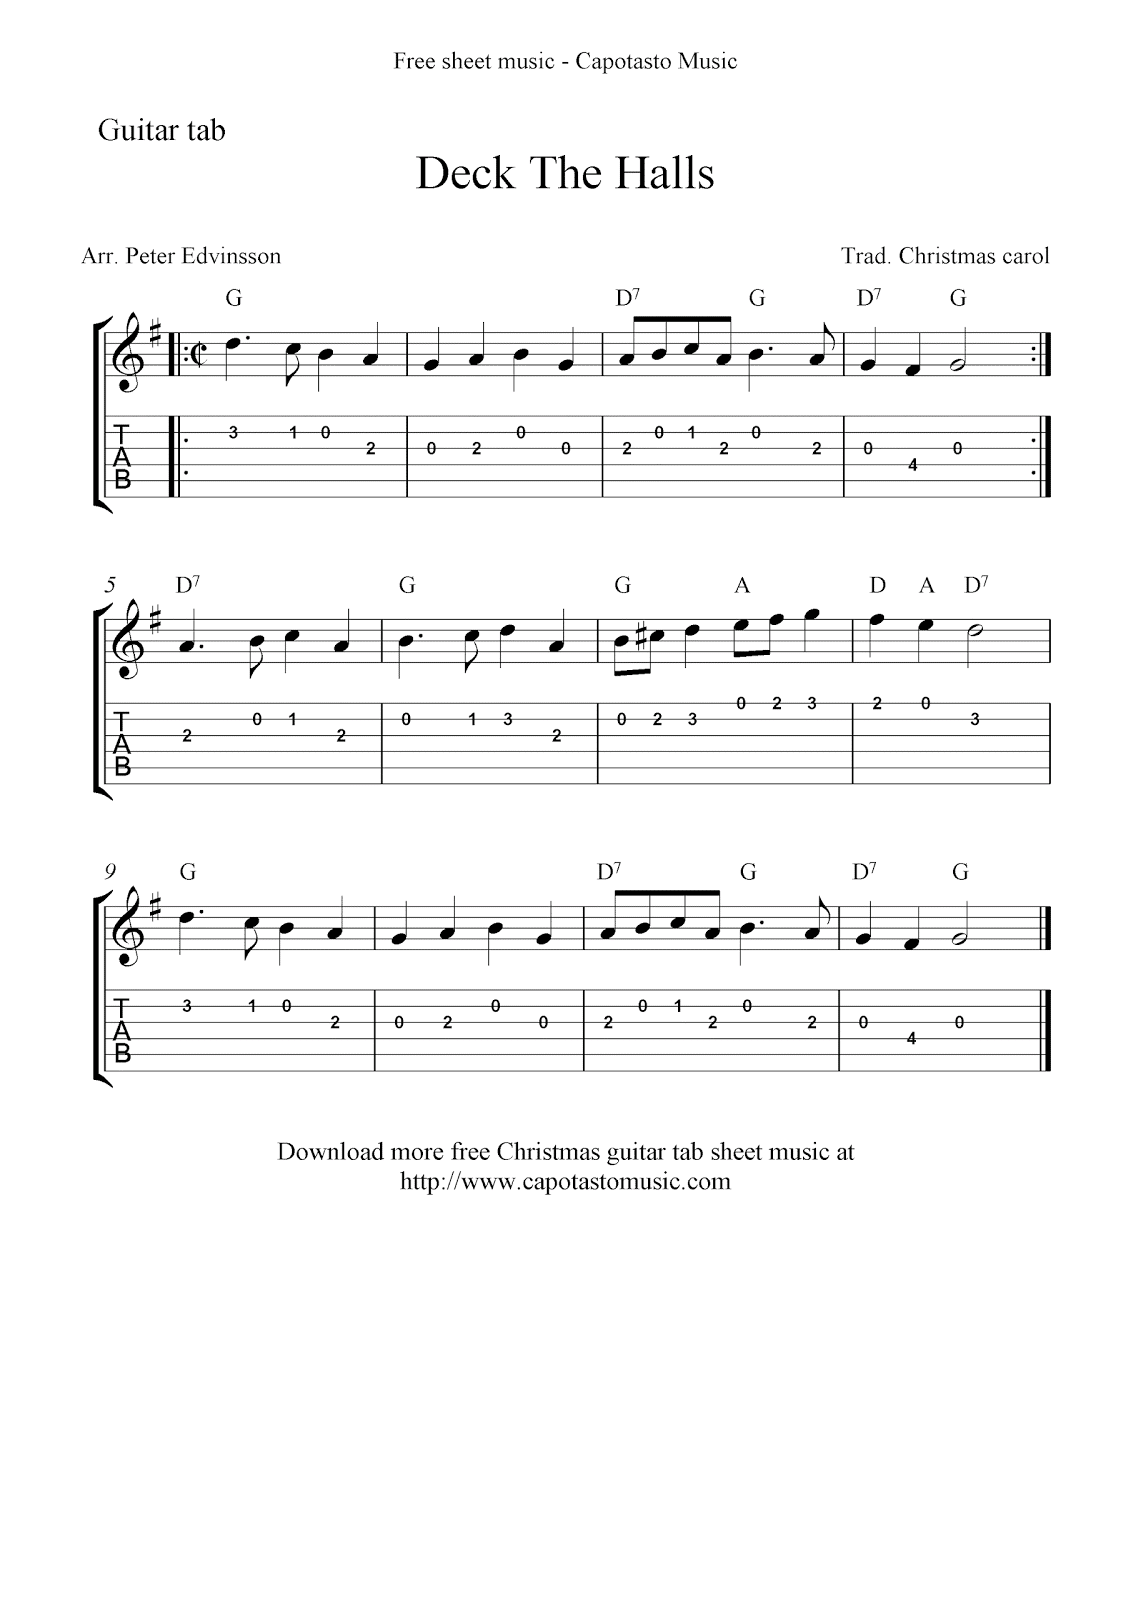 Deck The Halls, free easy guitar tablature sheet music score